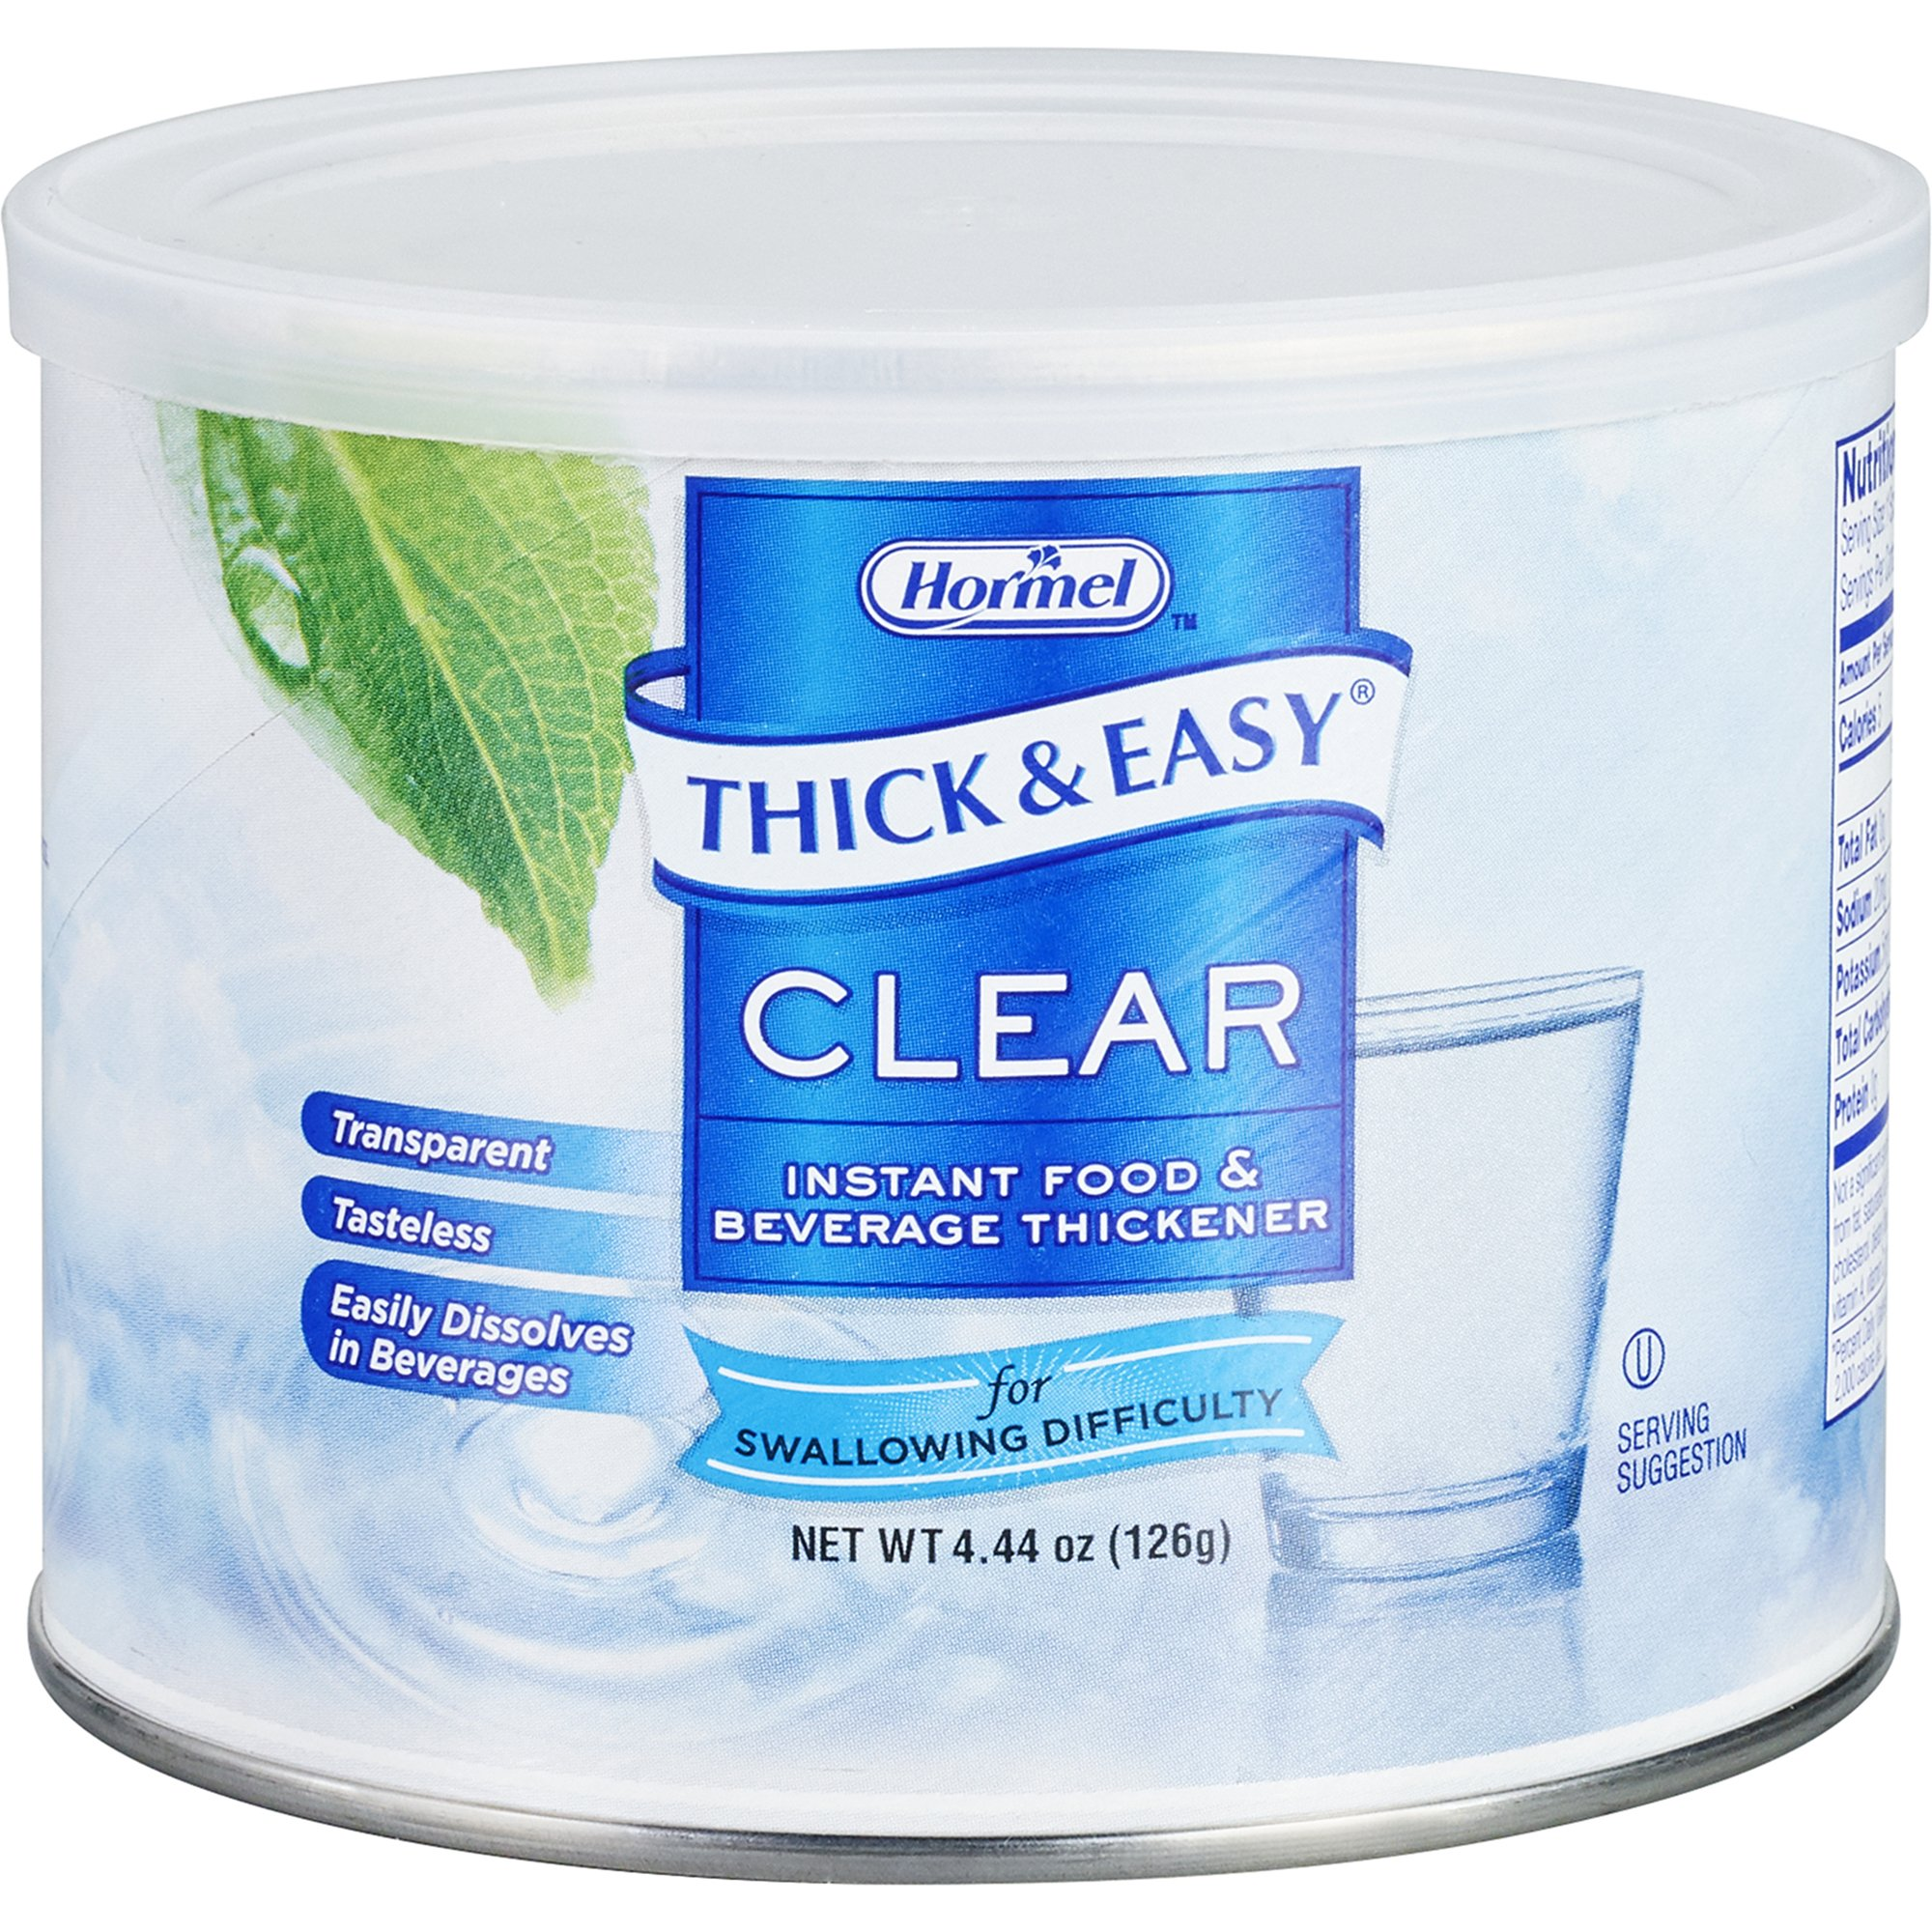 Thick & Easy Clear Food and Beverage Thickener, 4.4 oz. Canister, 25544, Case of 4